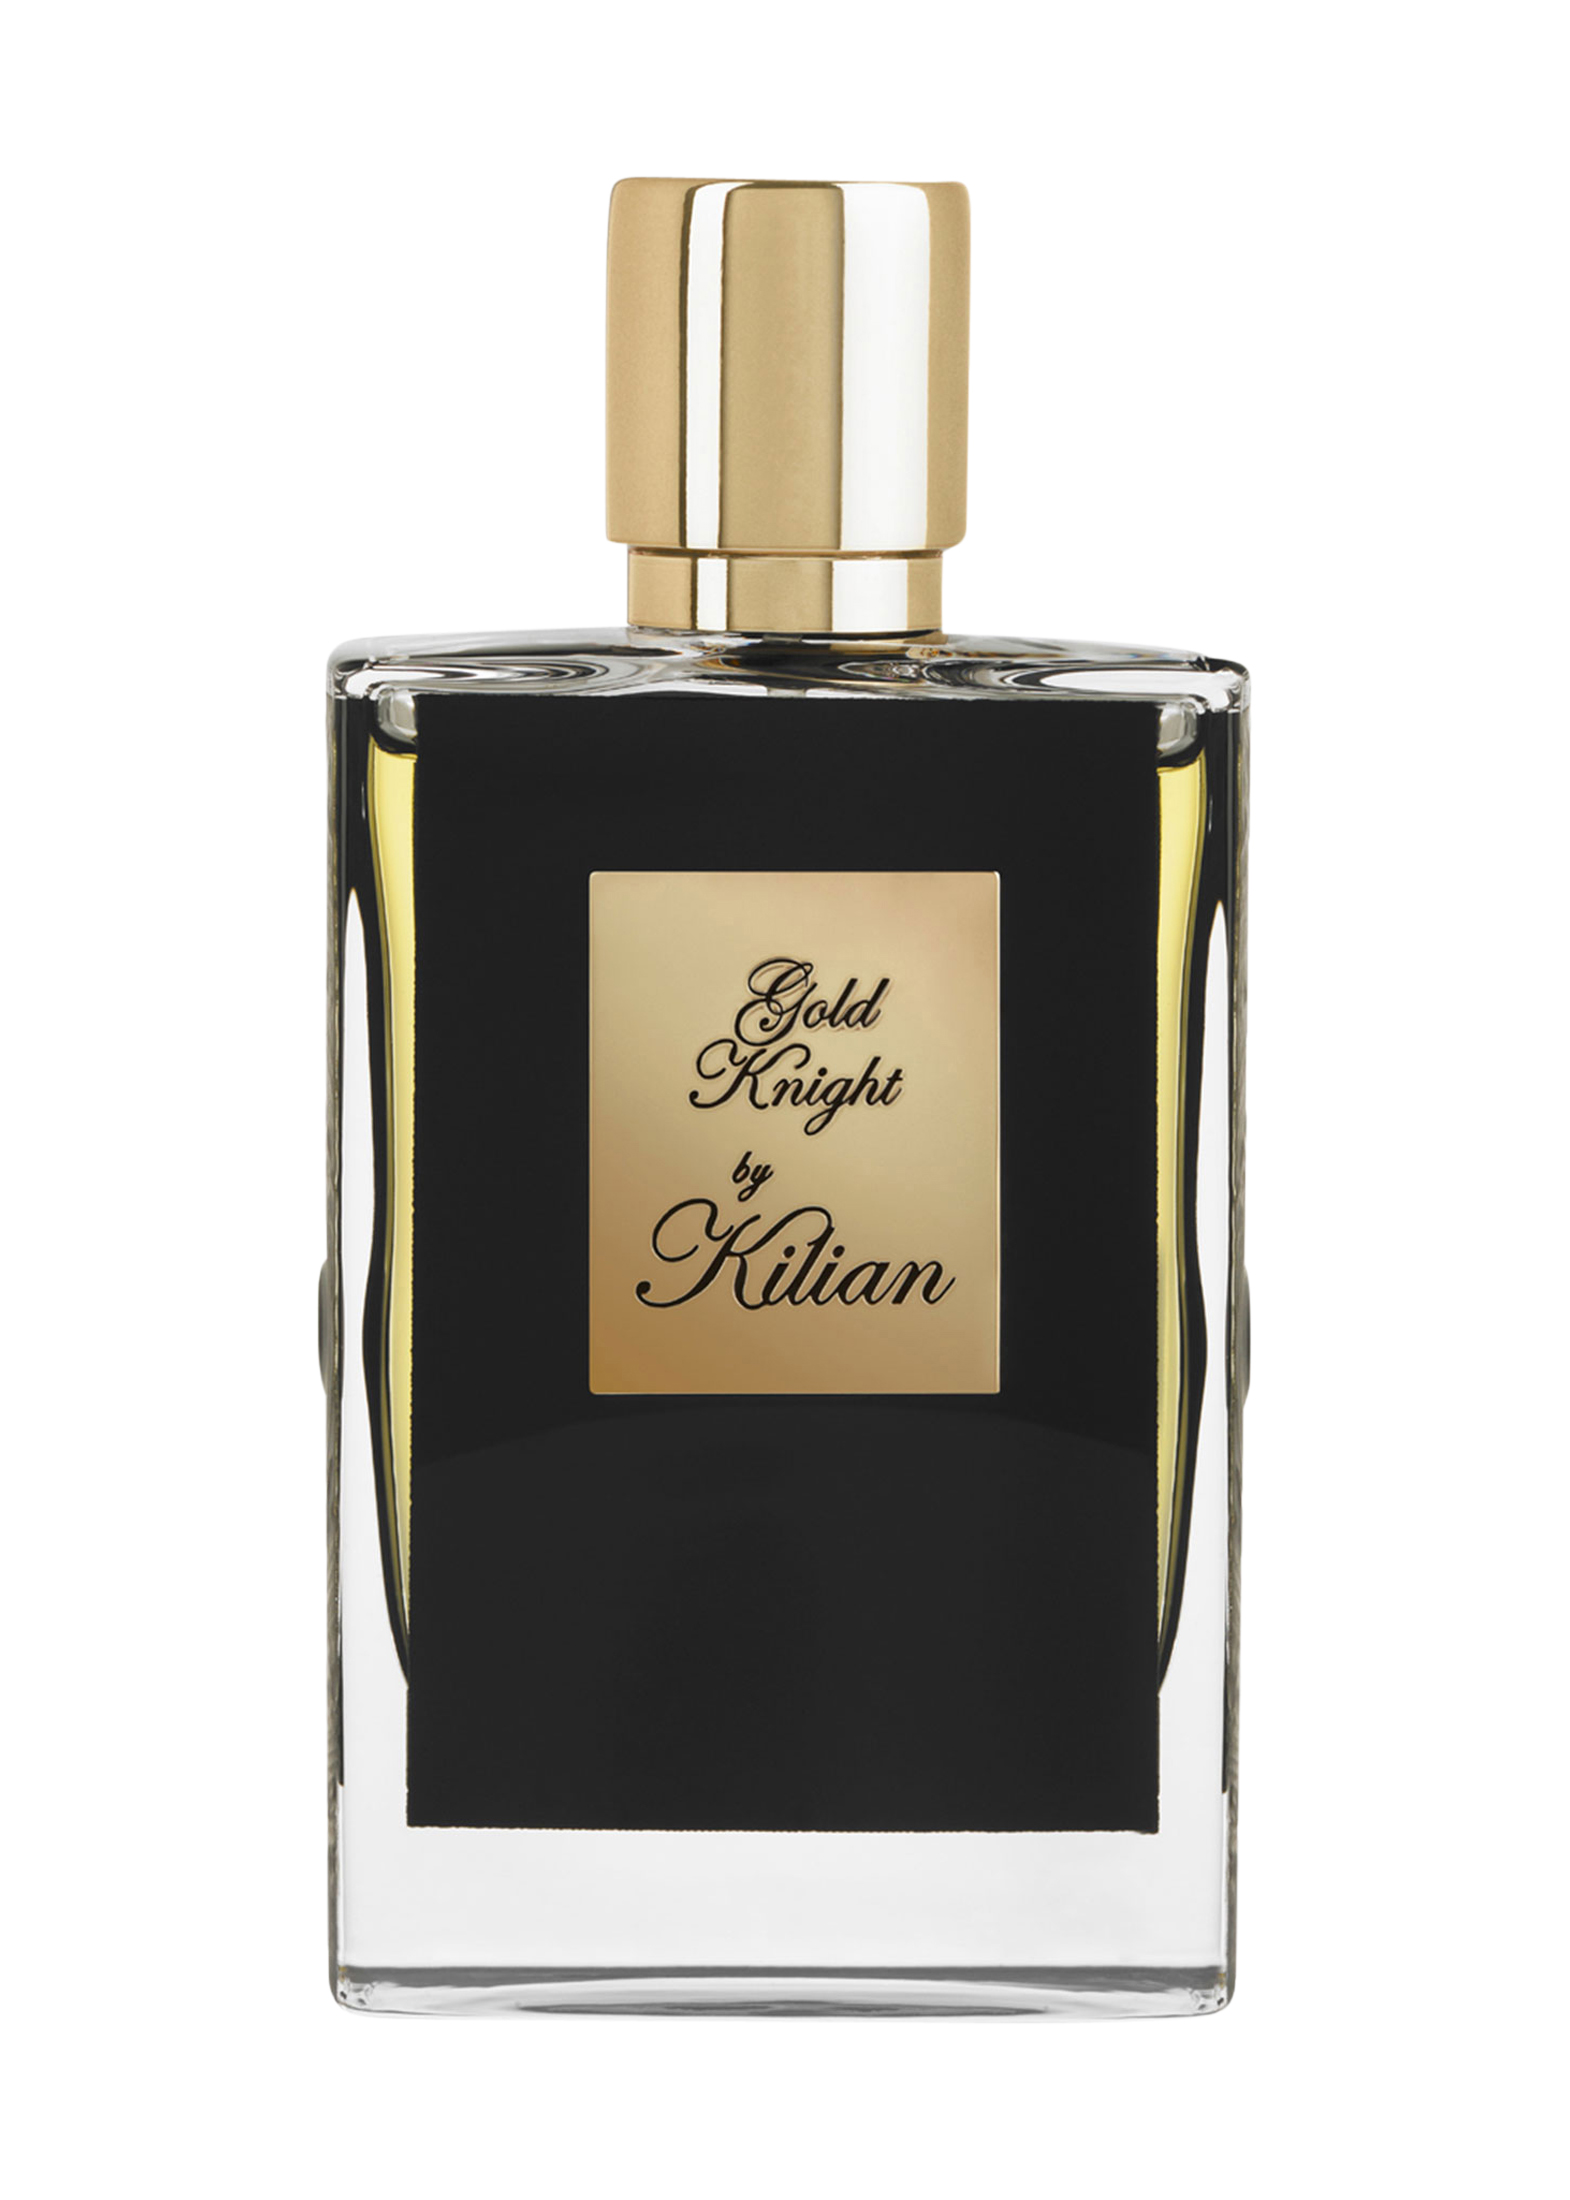 Gold Knight 50 ml image number 0